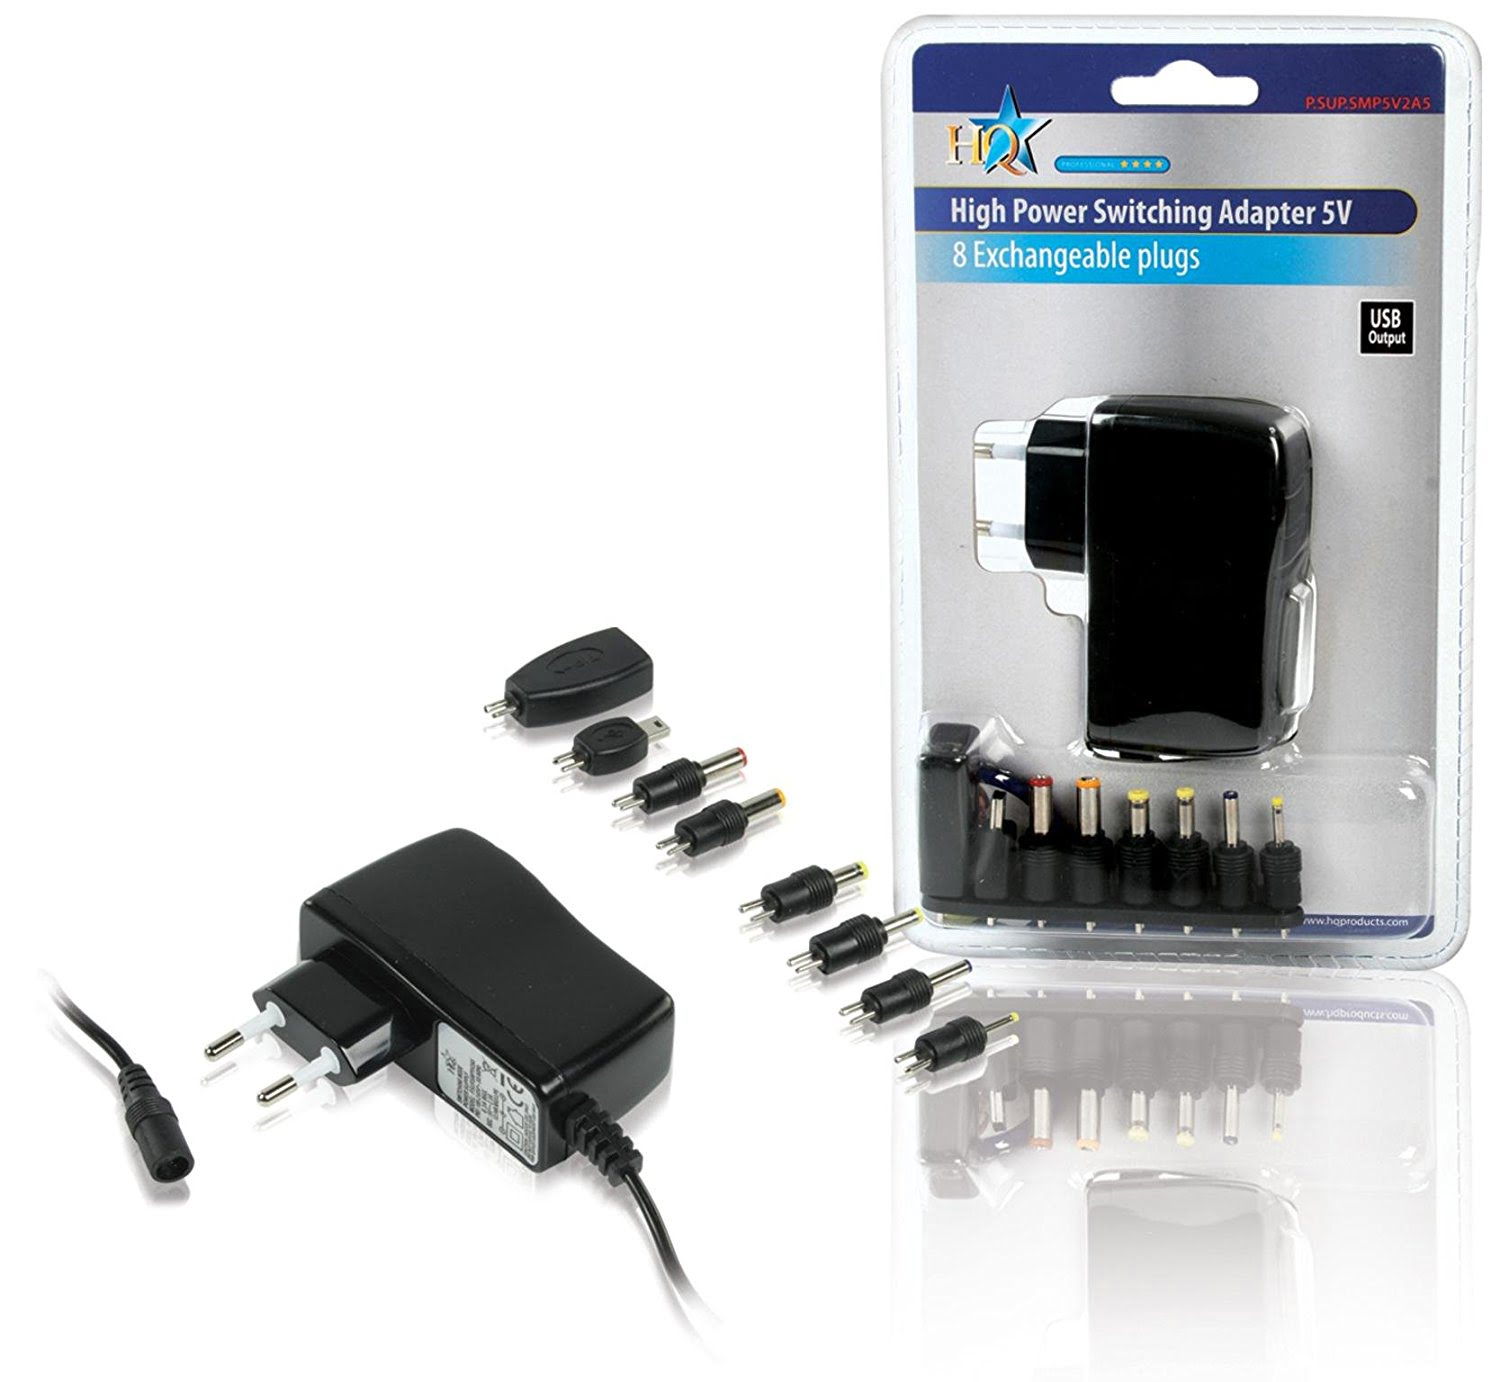 Chargeur Universel 13W - P.SUP.SMP5V2A5 (DUST) - 0